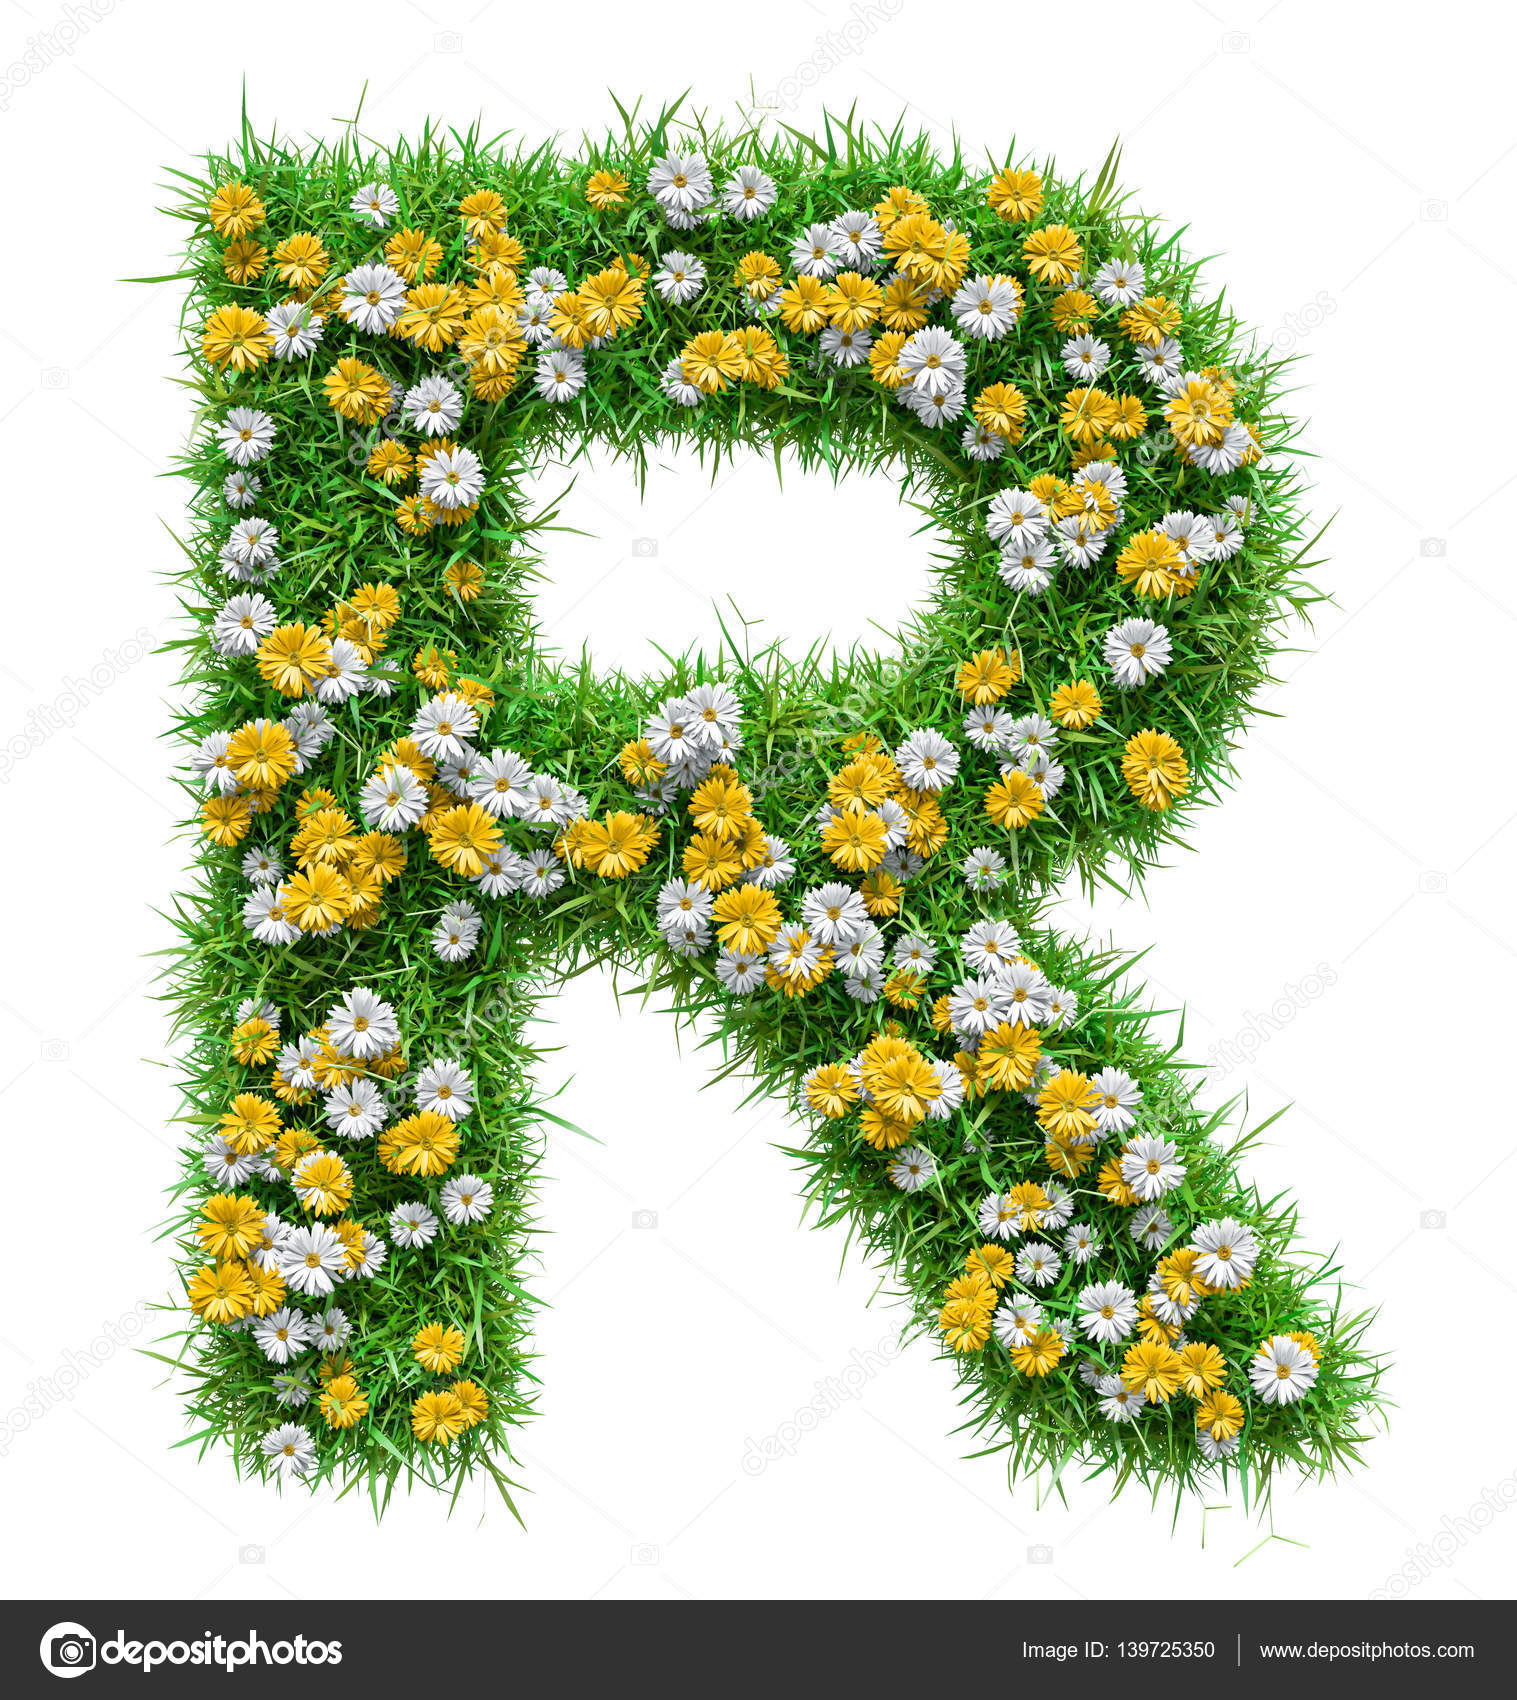 Letter r of green grass and flowers stock photo cherezoff 139725350 letter r of green grass and flowers stock photo altavistaventures Gallery